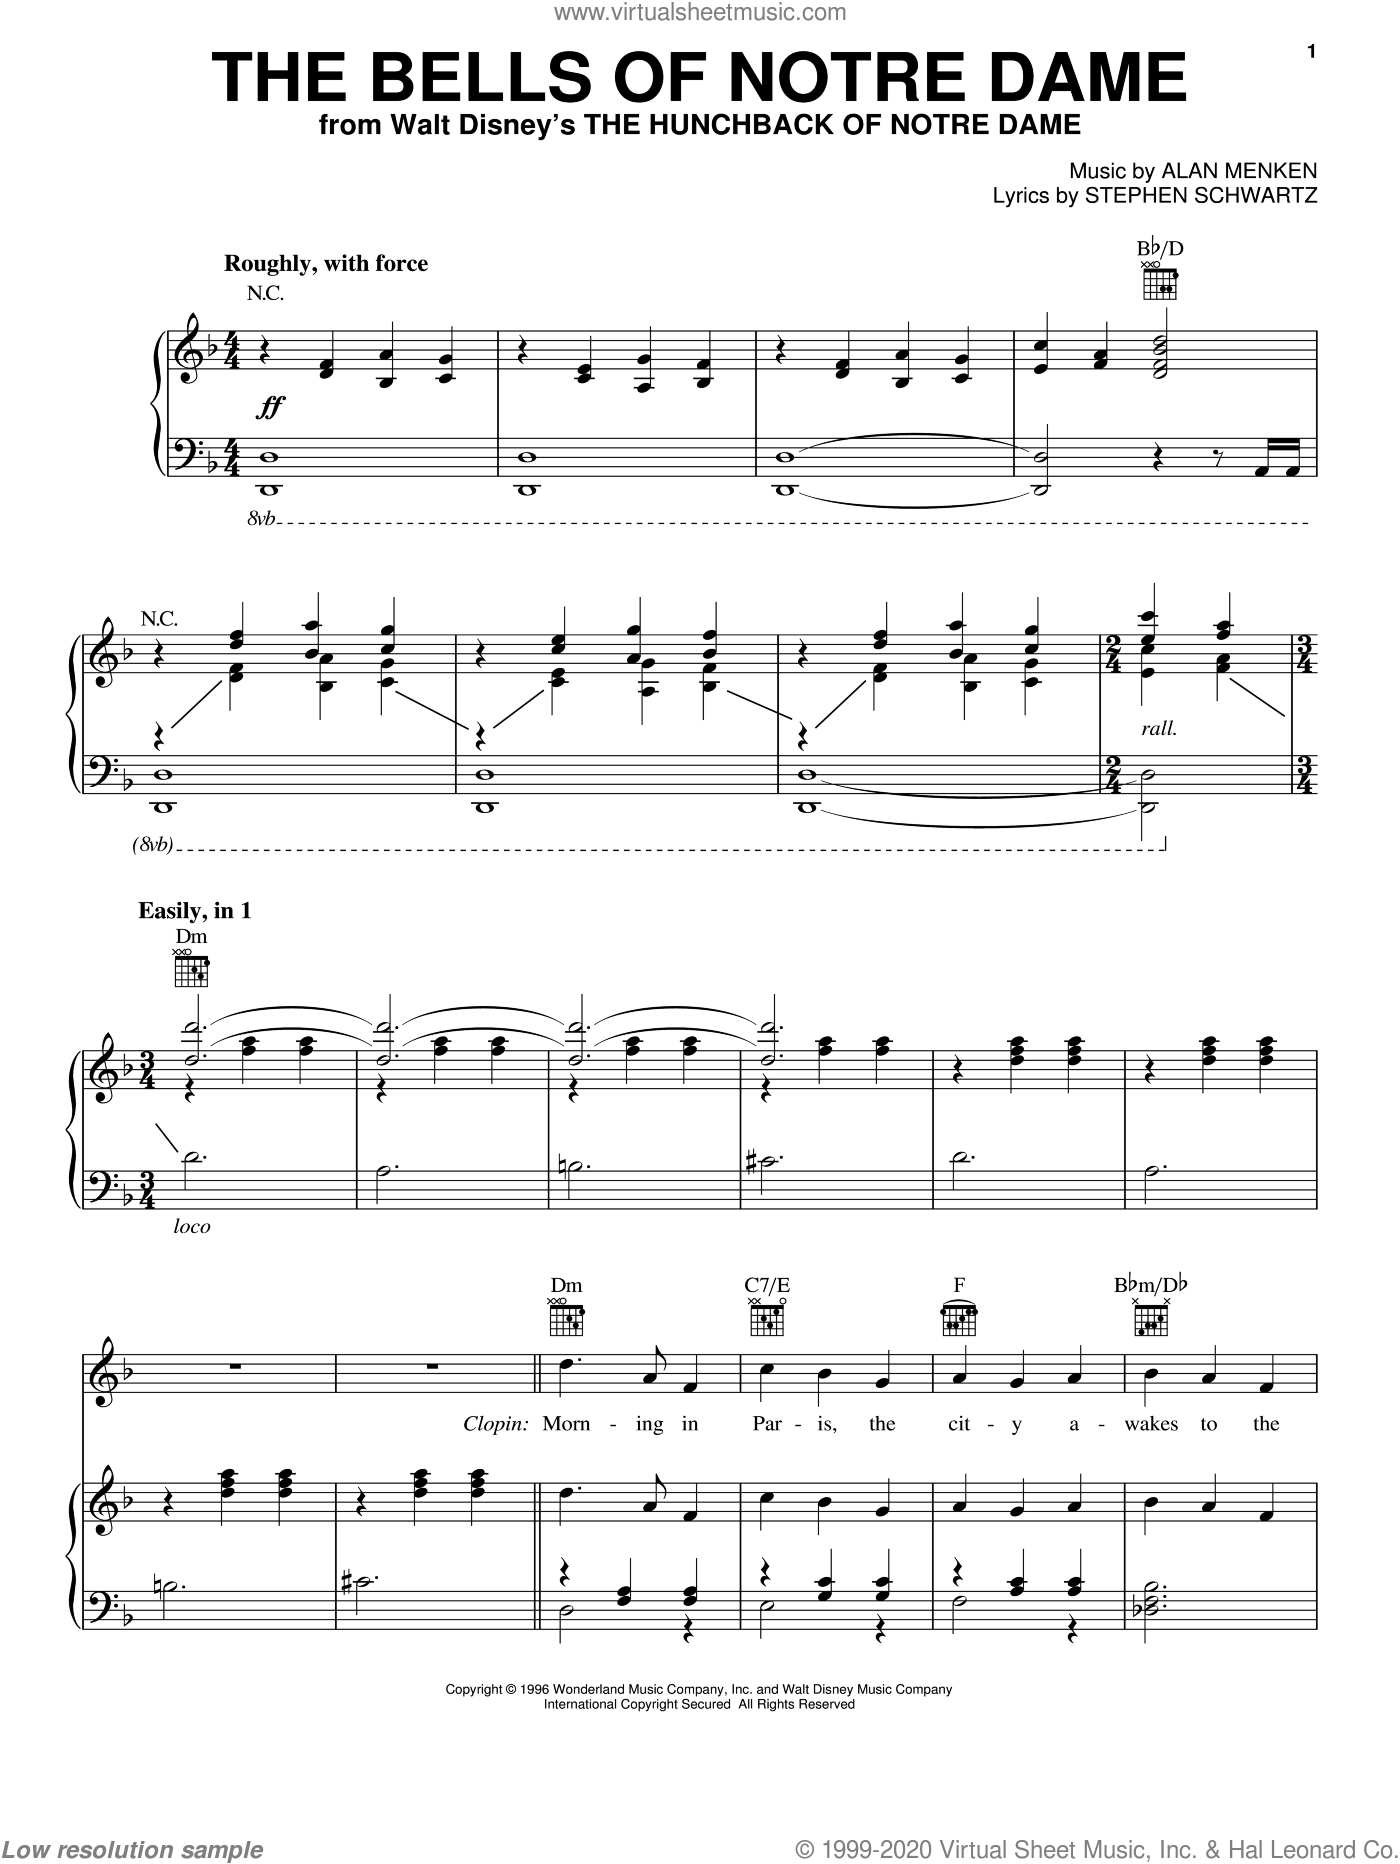 The Bells Of Notre Dame sheet music for voice, piano or guitar by Alan Menken and Stephen Schwartz, intermediate skill level